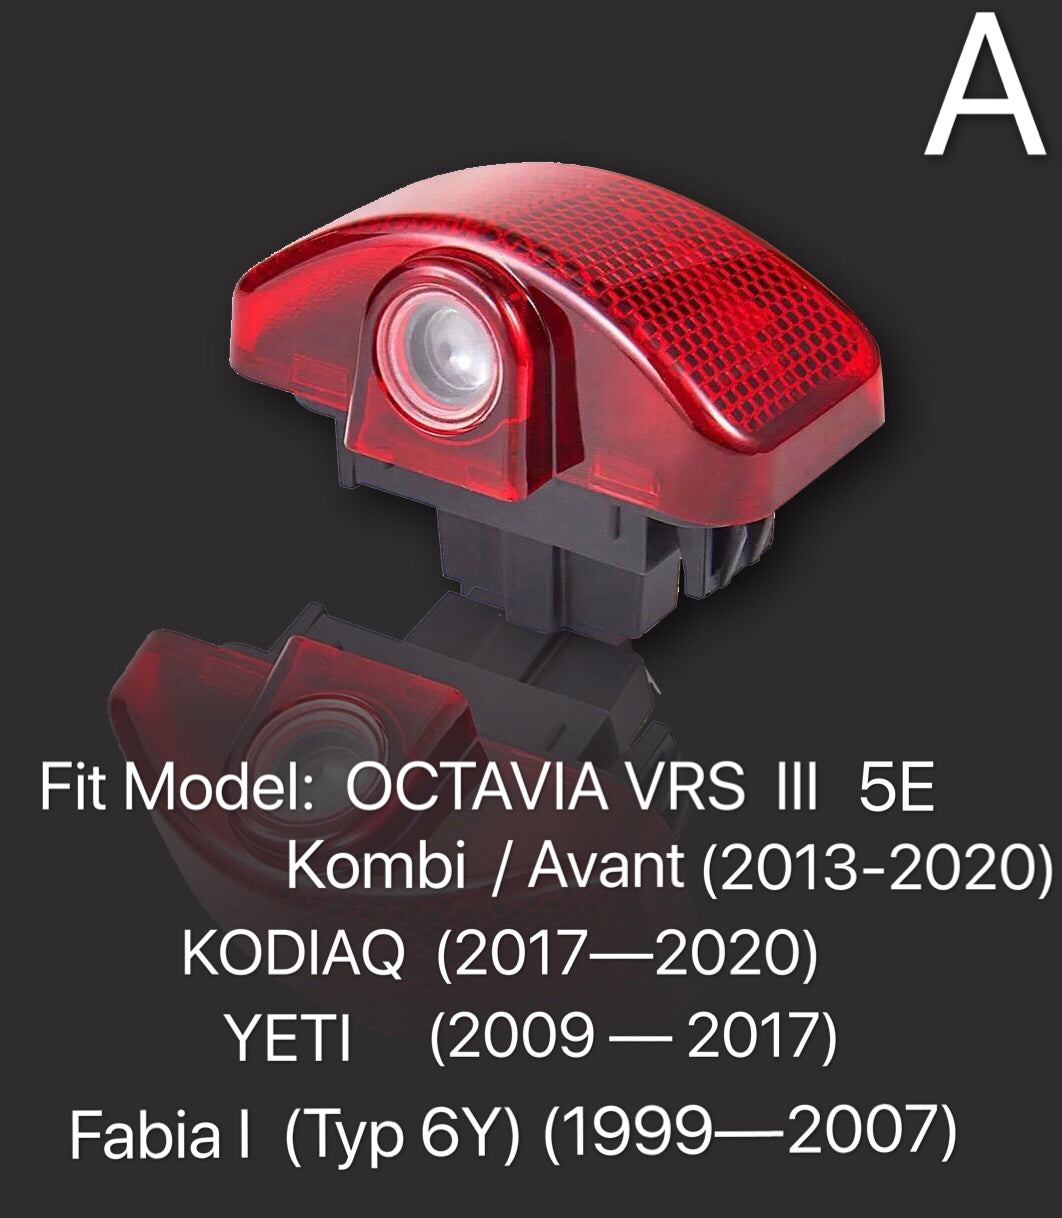 SKODA VRS LOGO PROJECTOT LIGHTS Nr.32 (quantity  1 =  2 Logo Film /  2 door lights)